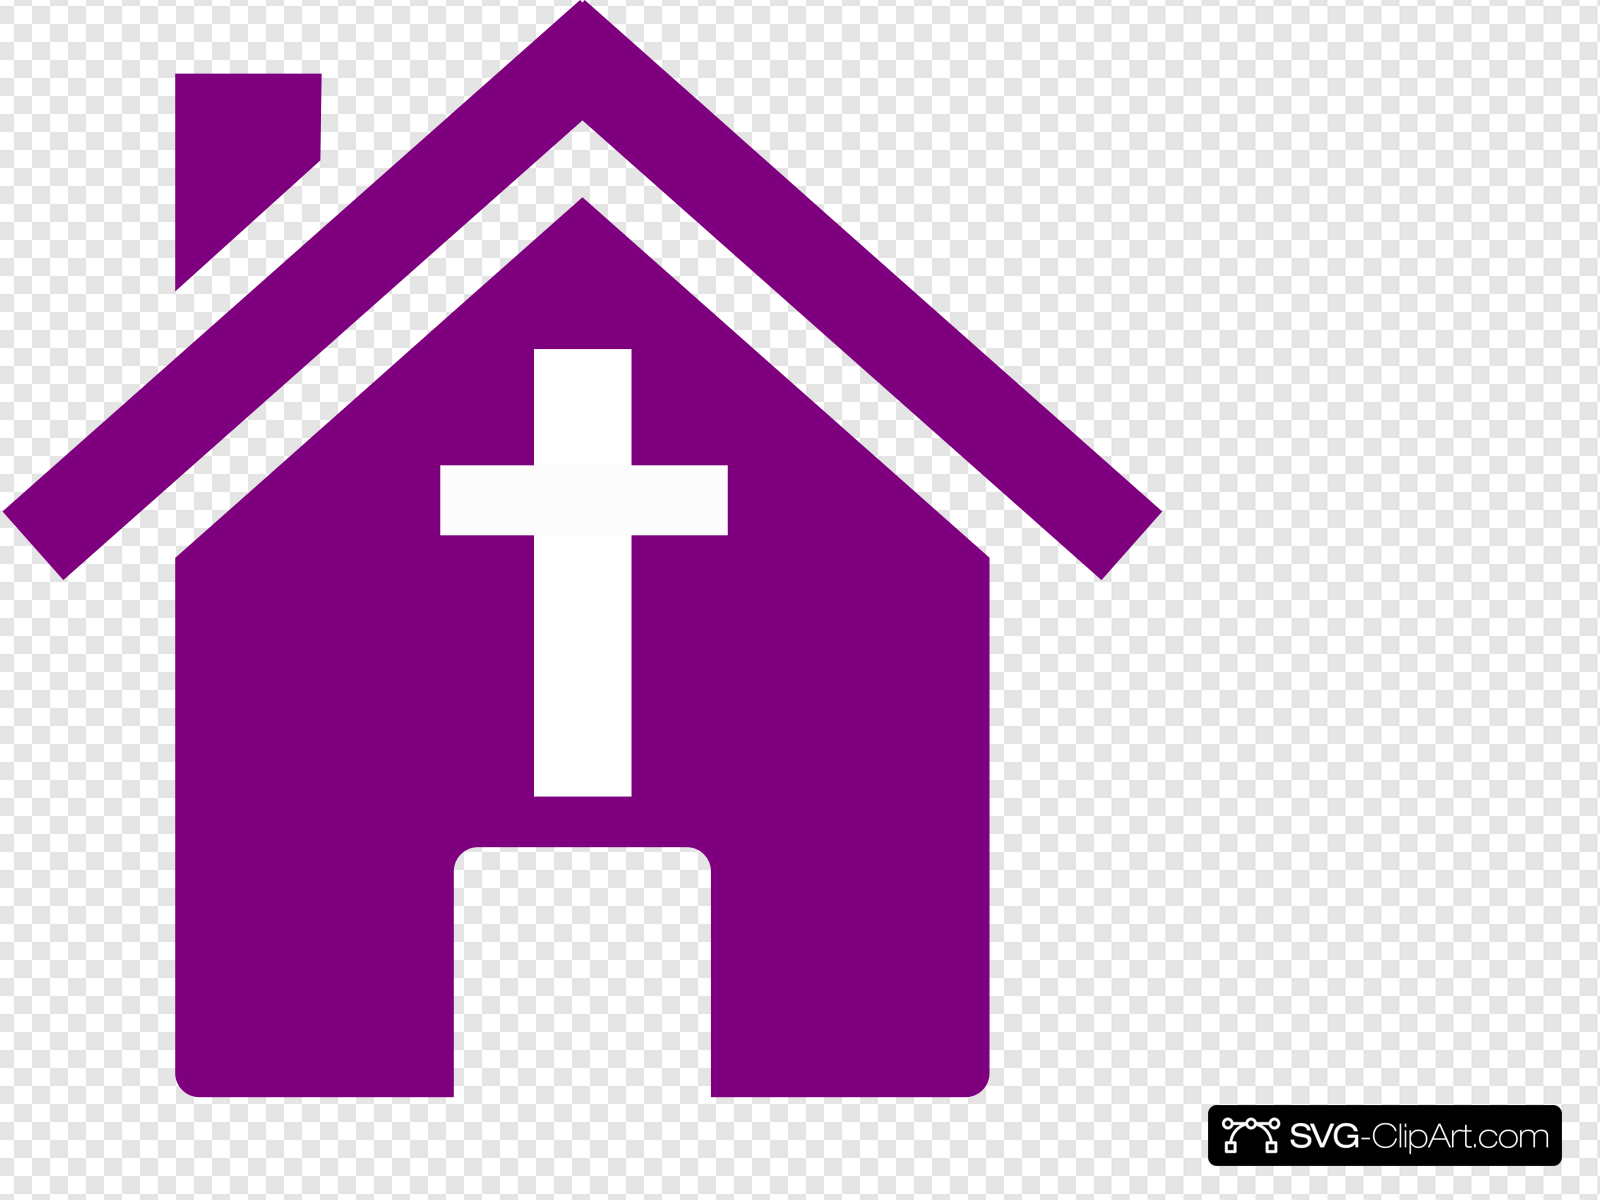 Purple Church House Clip art, Icon and SVG.